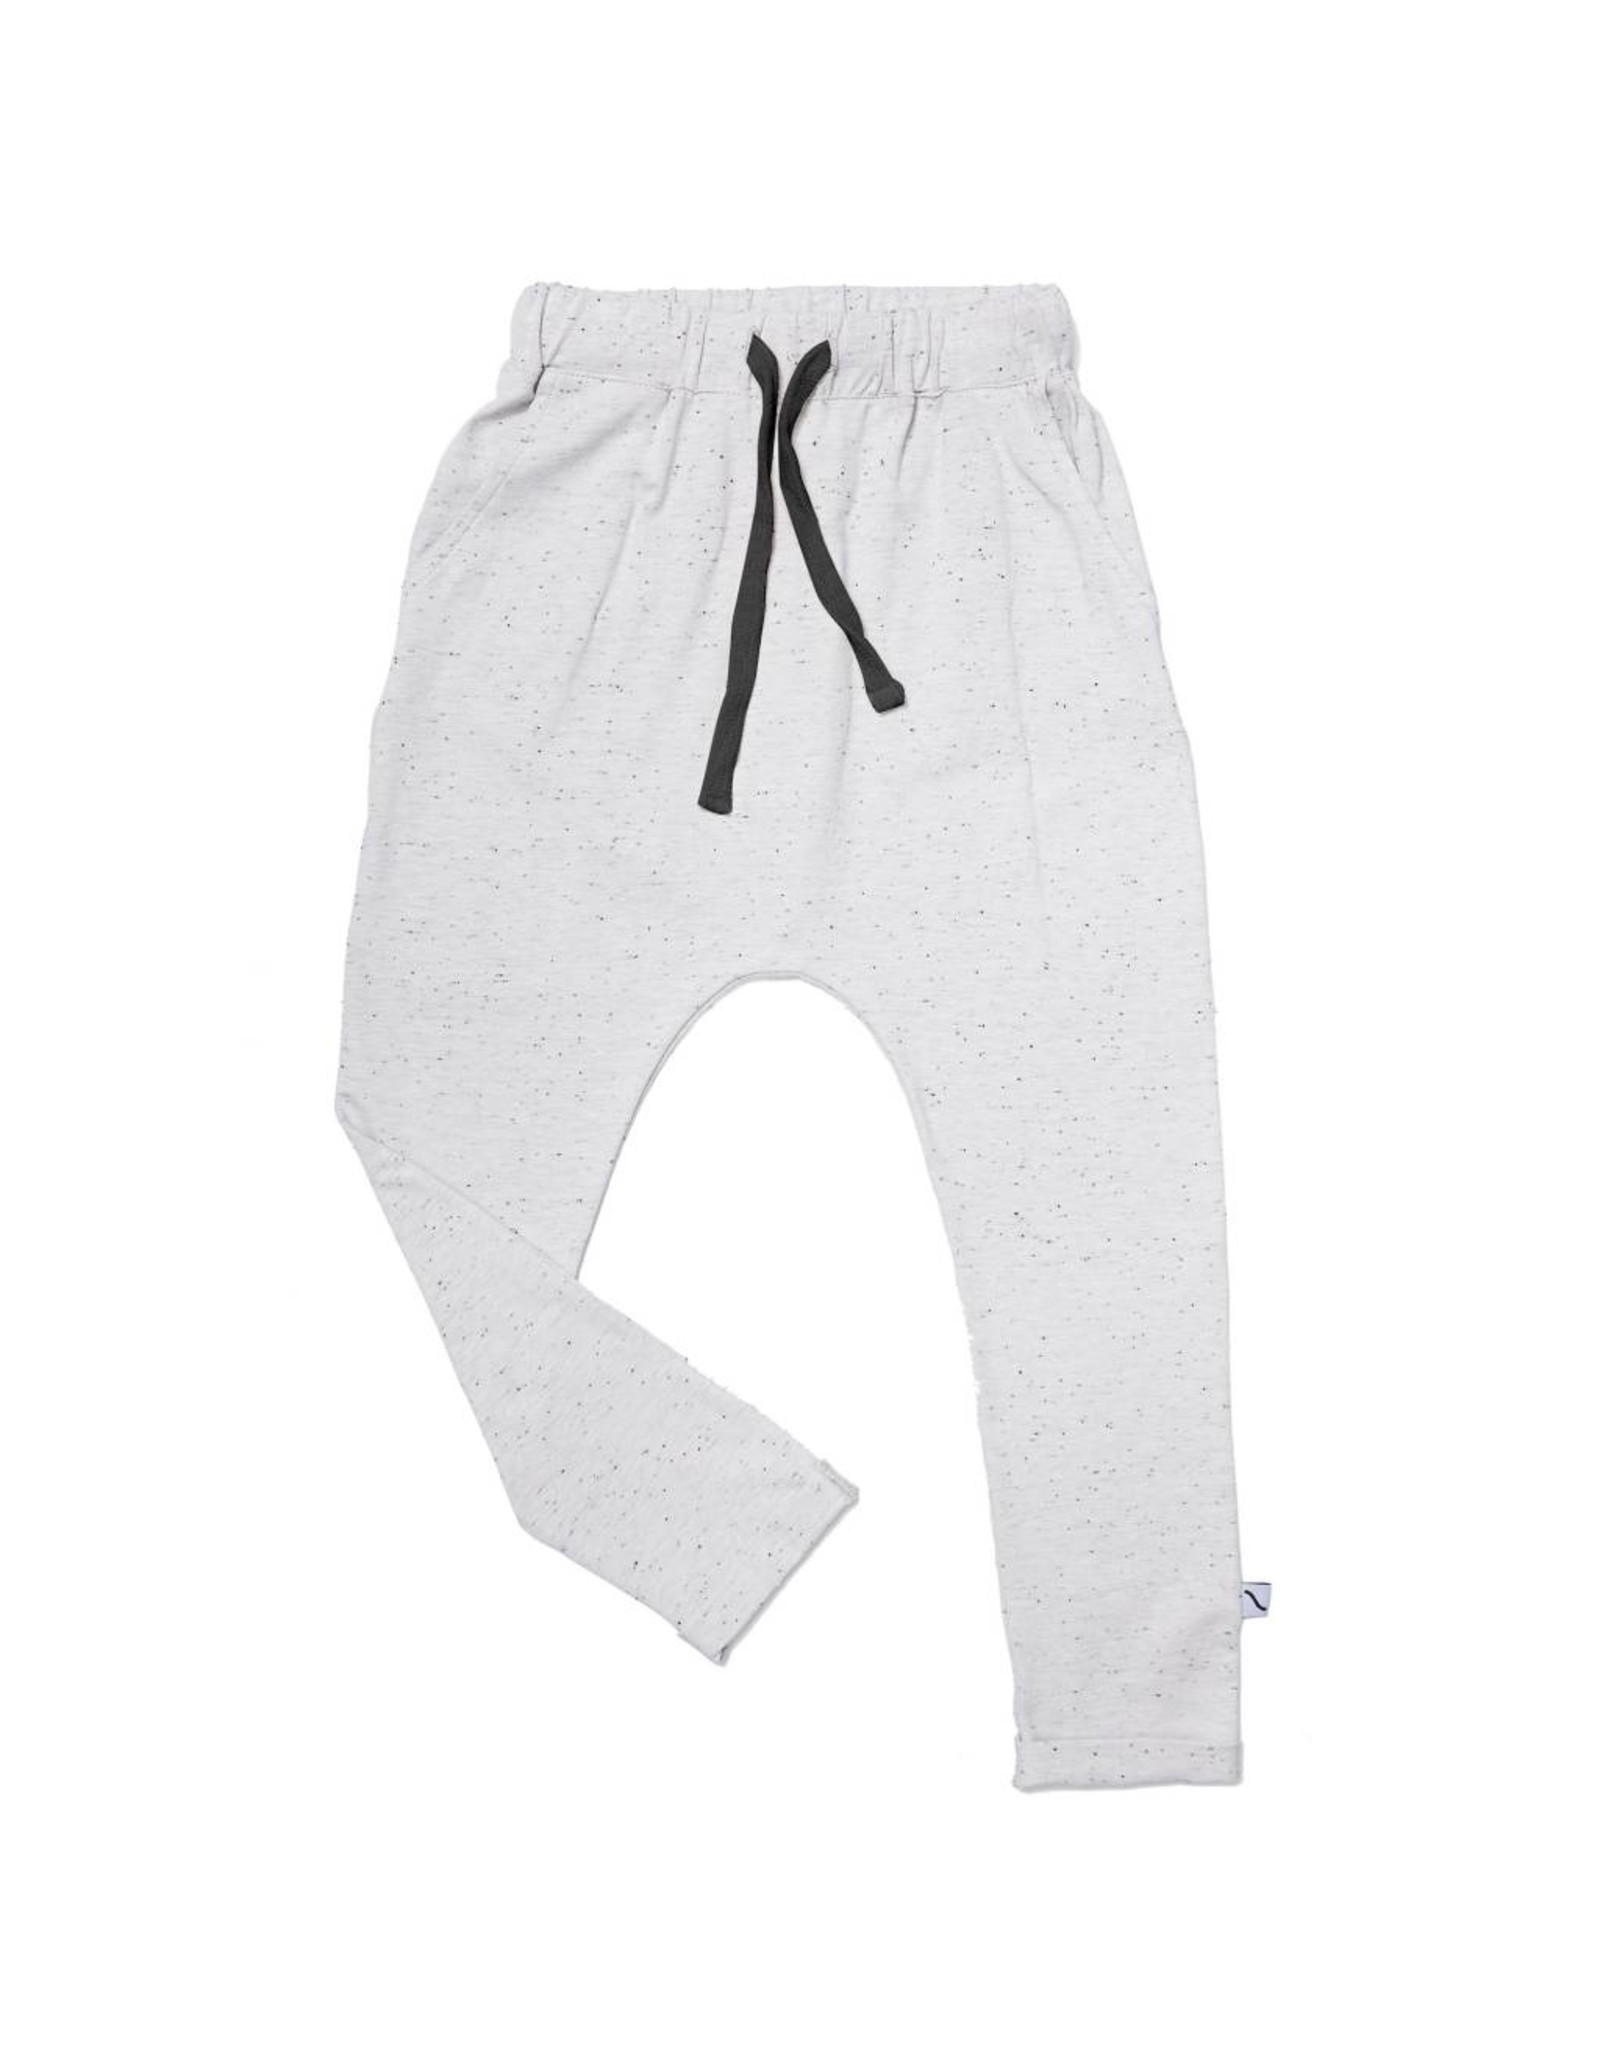 CarlijnQ Basics - grey sweatpants with pockets